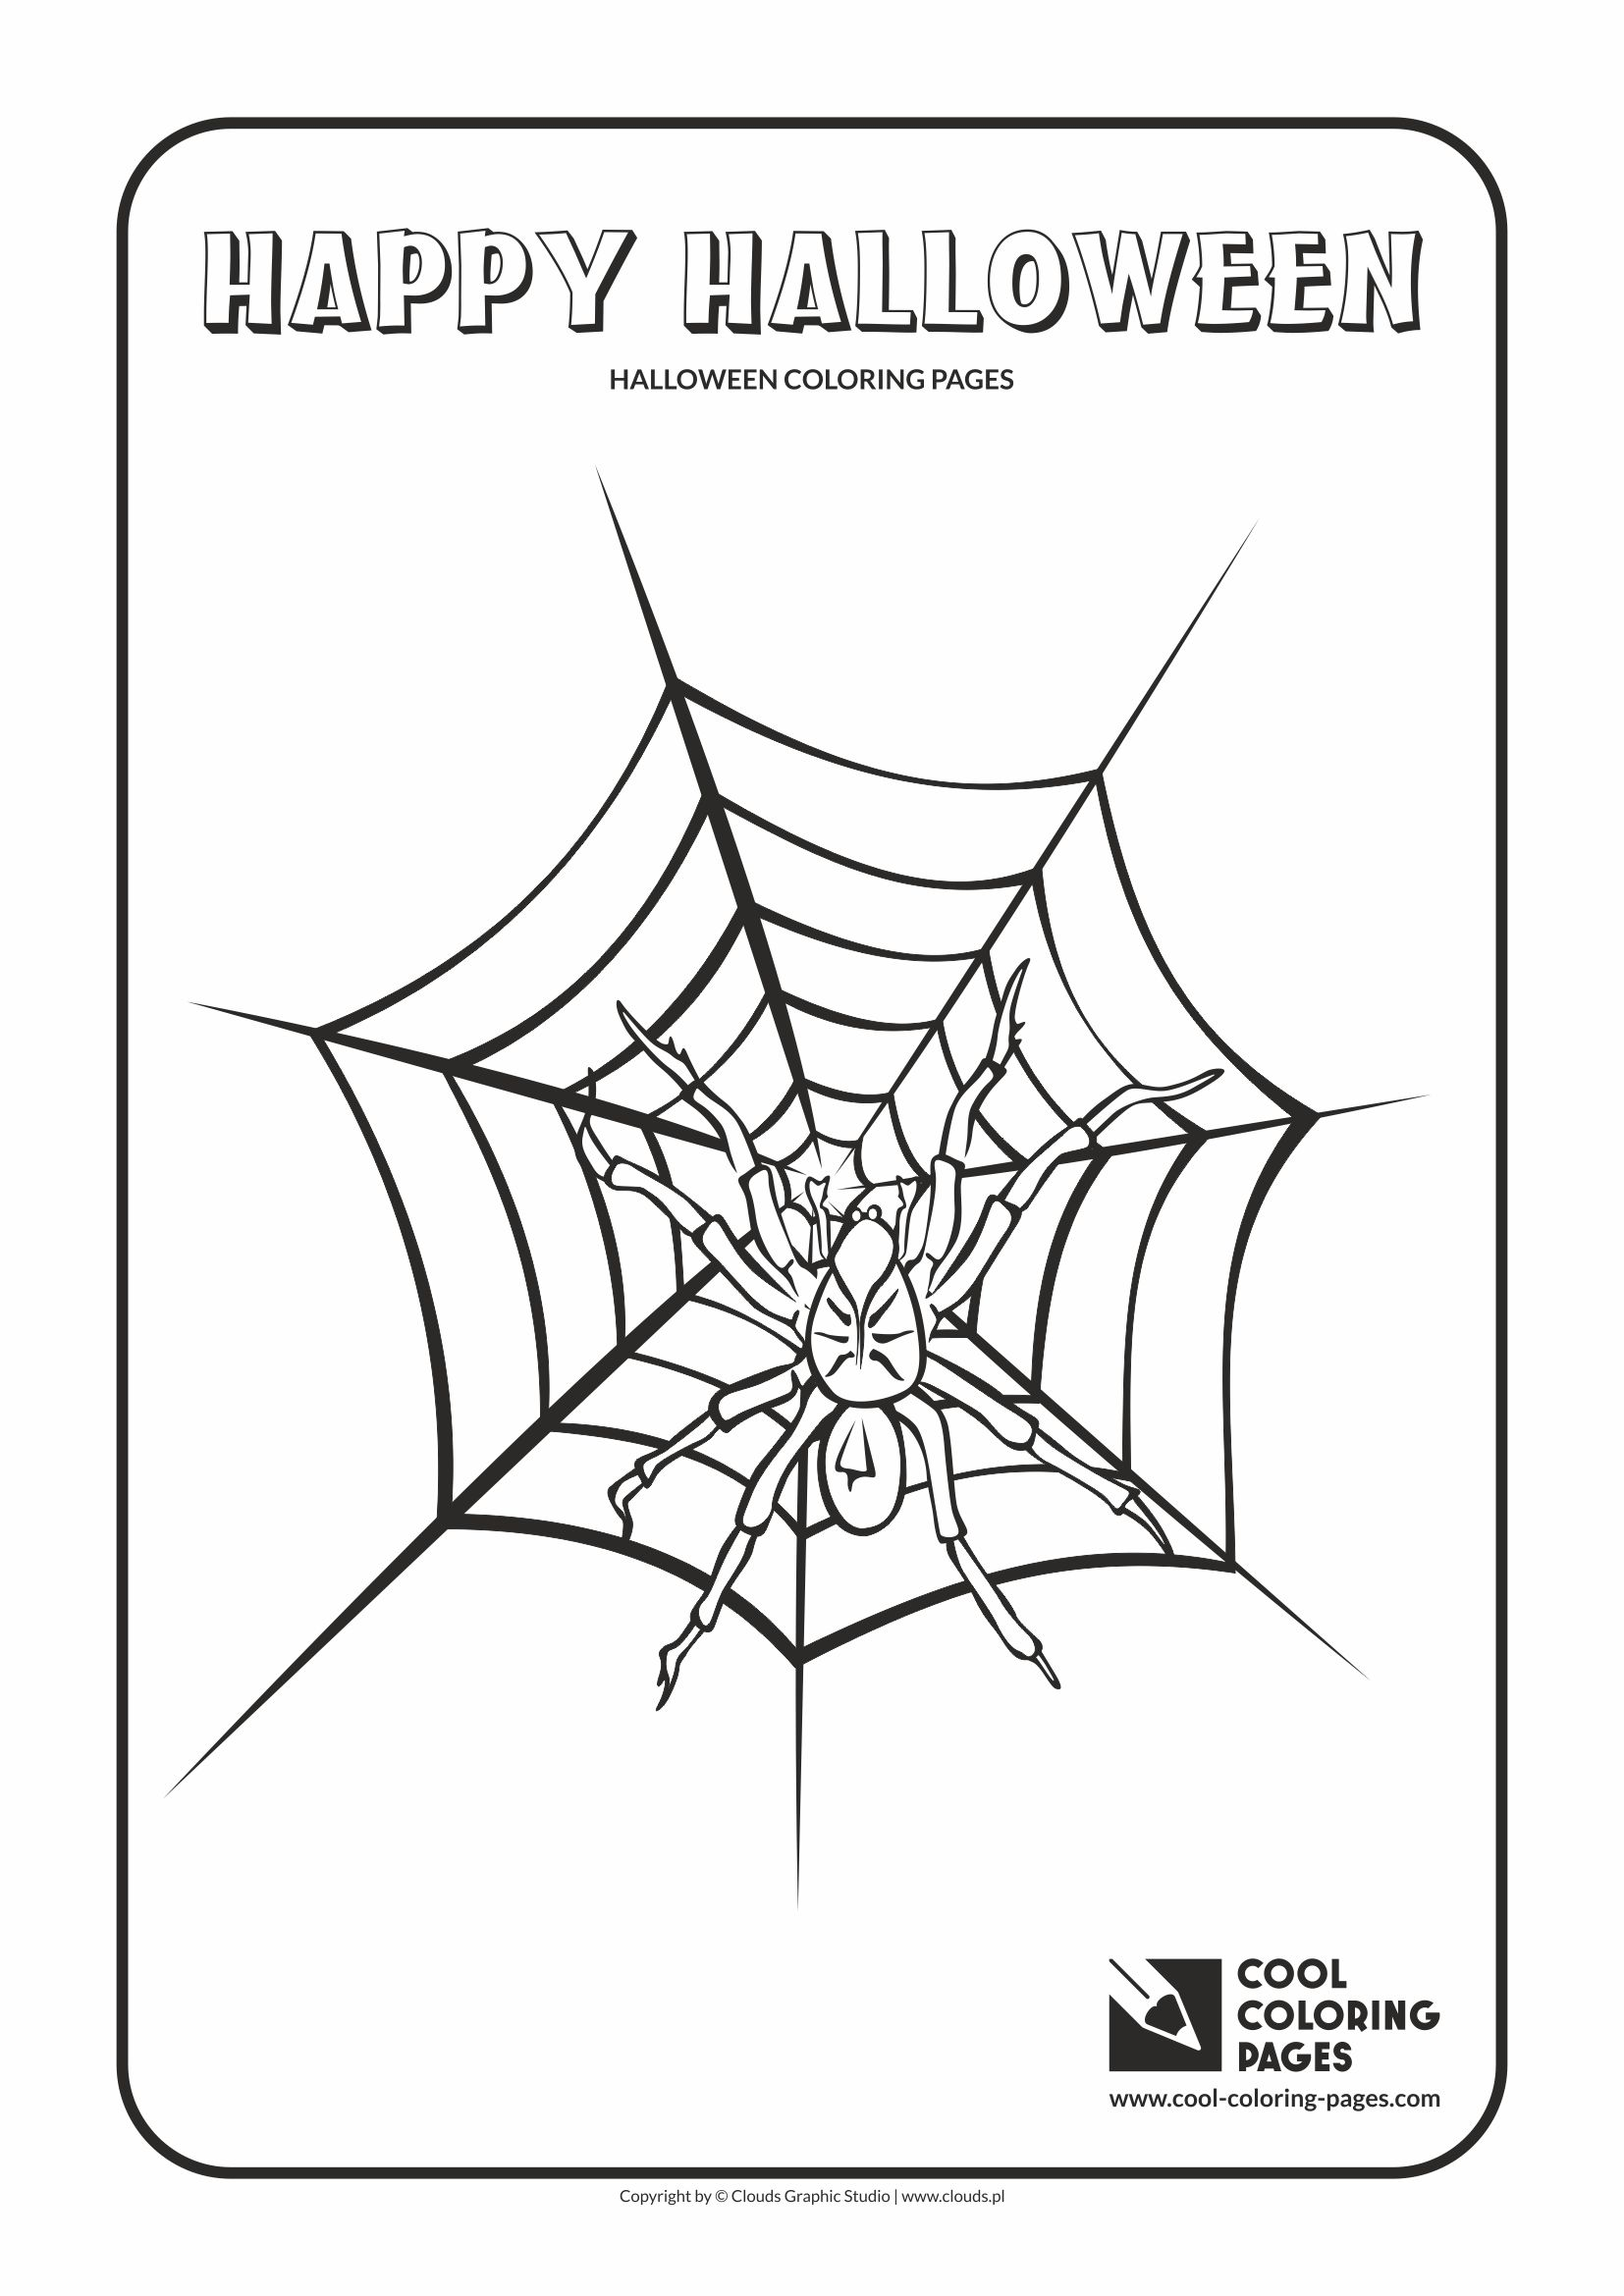 Cool Coloring Pages Home